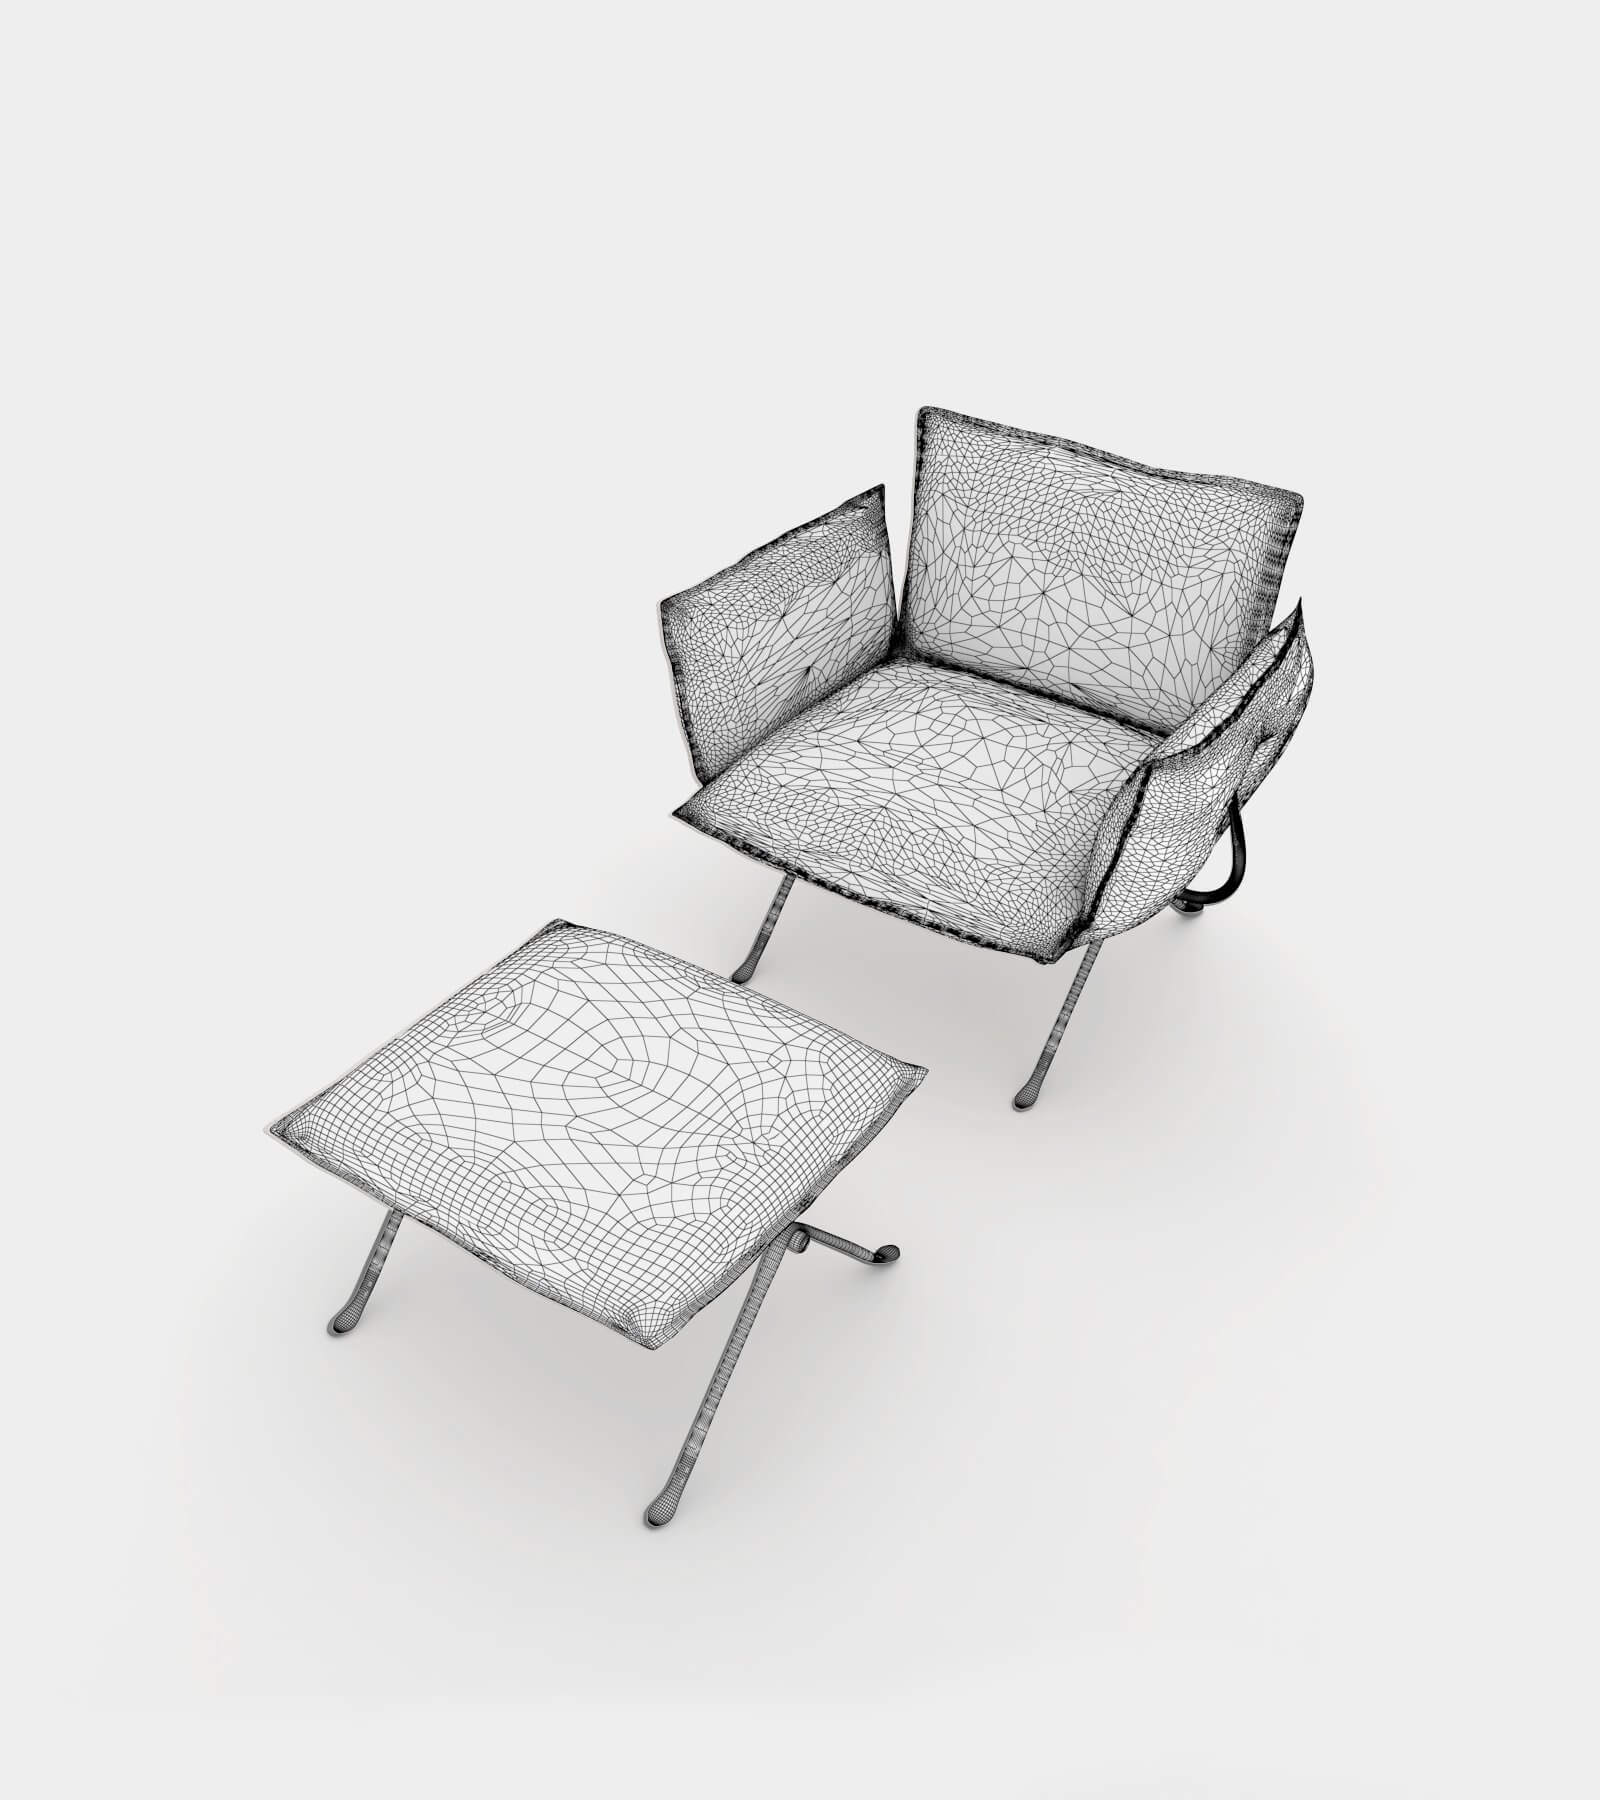 Armchair with ottomane-14 3D Model